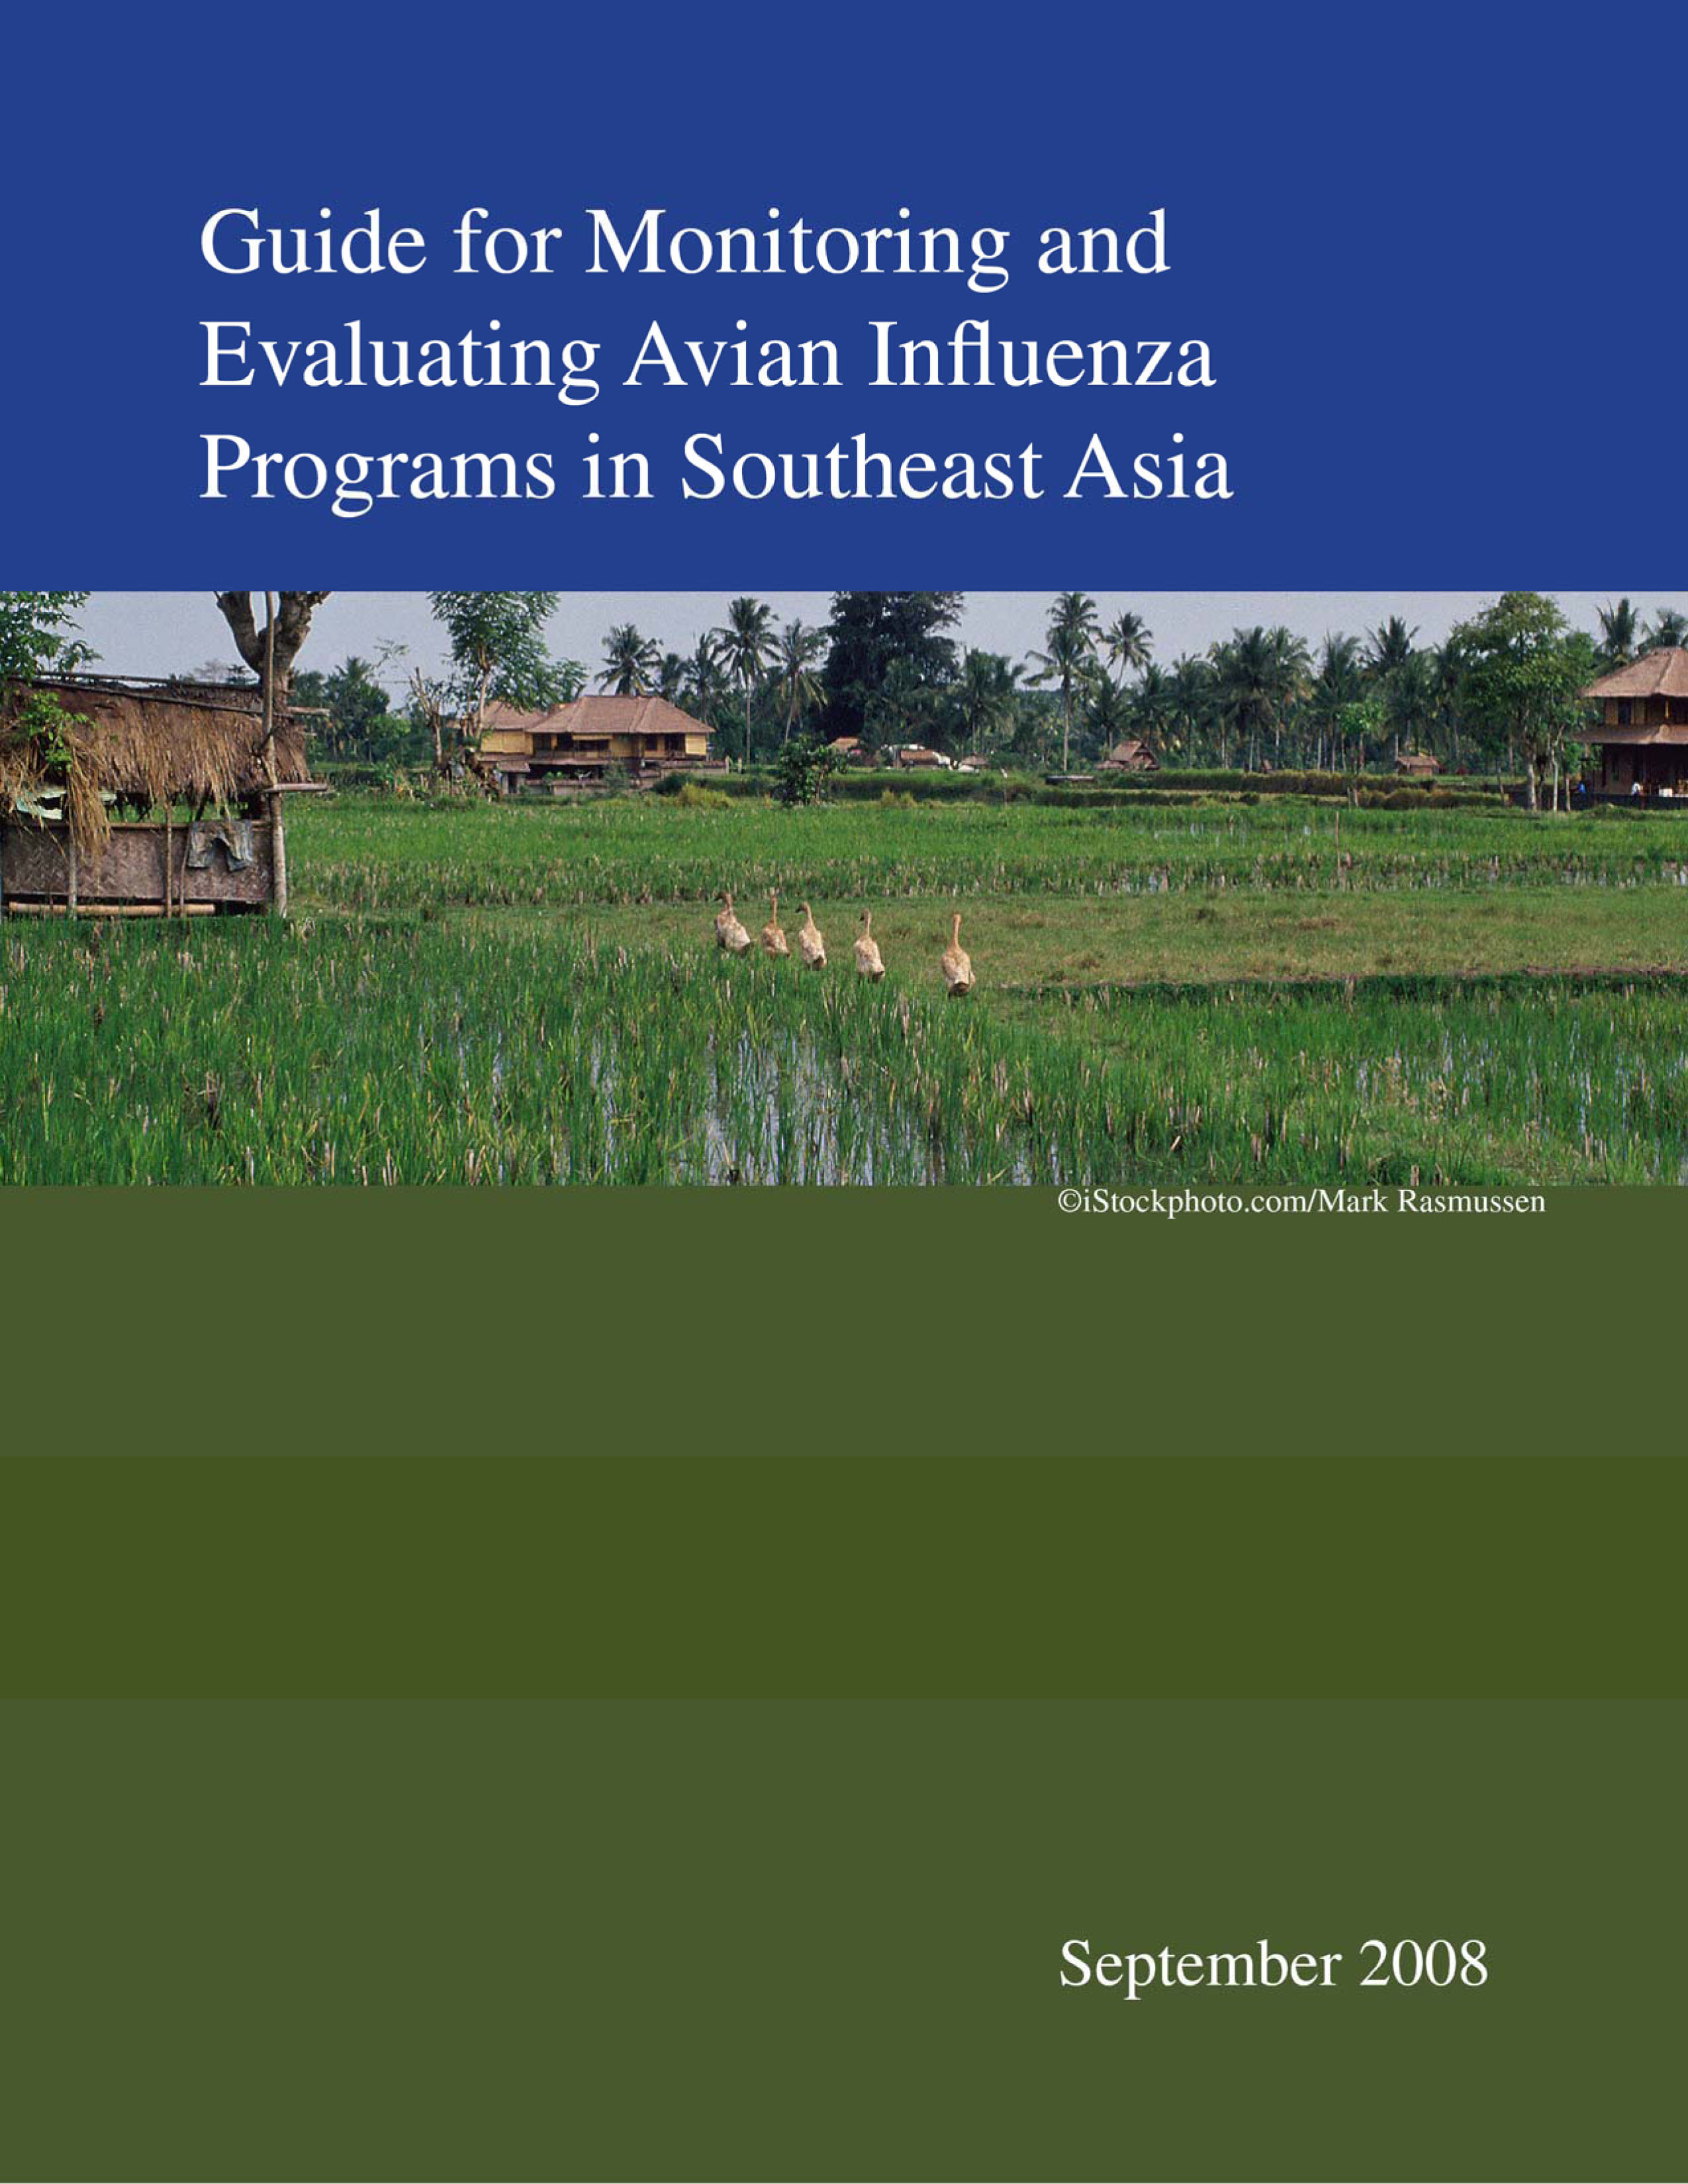 Guide for Monitoring and Evaluating Avian Influenza Programs in Southeast Asia